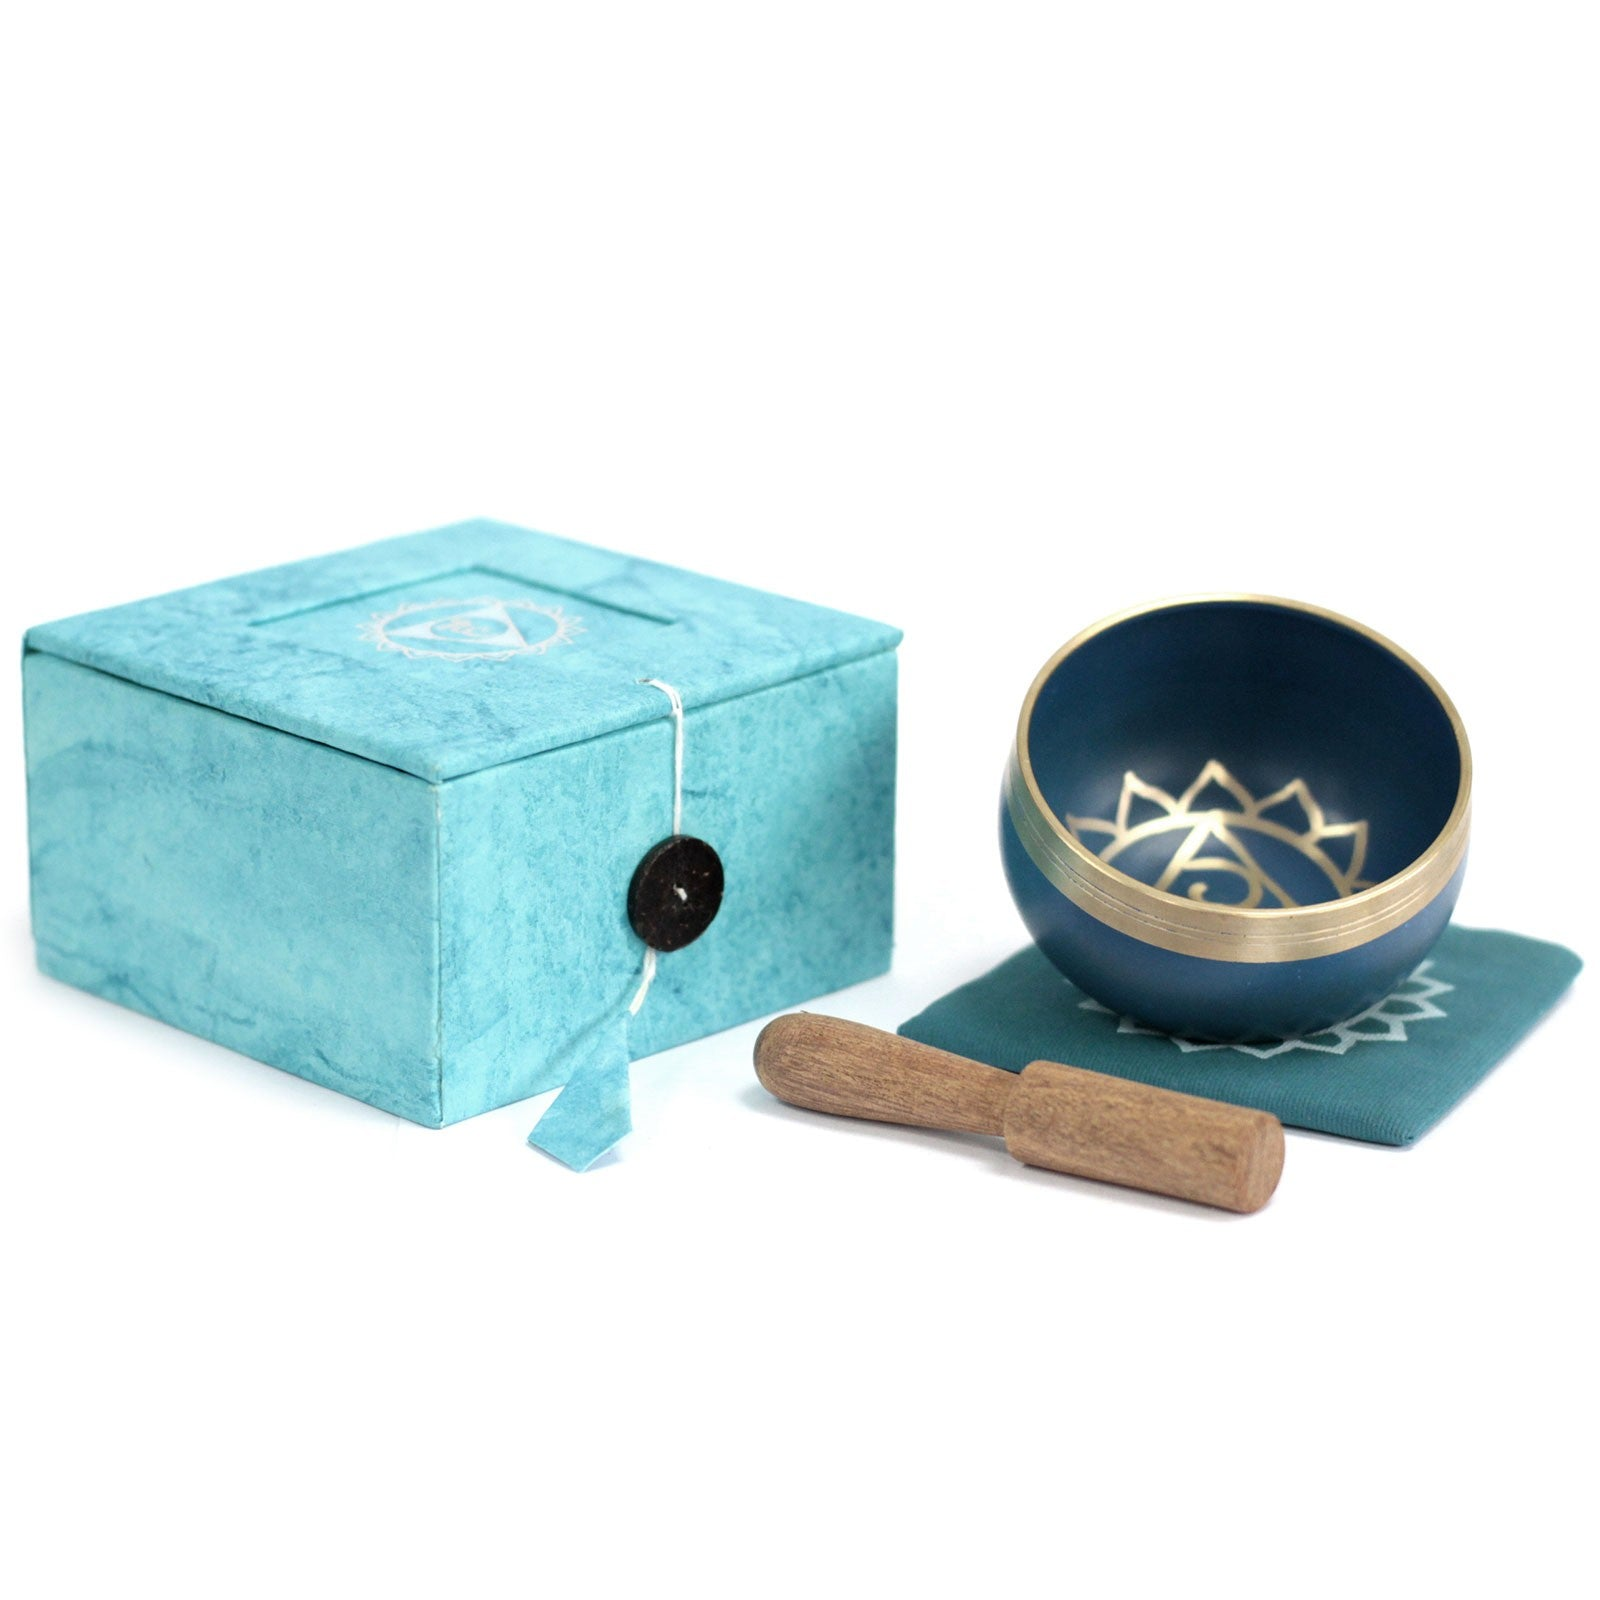 Chakra Singing Bowl - Throat, Musical Instrument & Orchestra Accessories by Gifts24-7